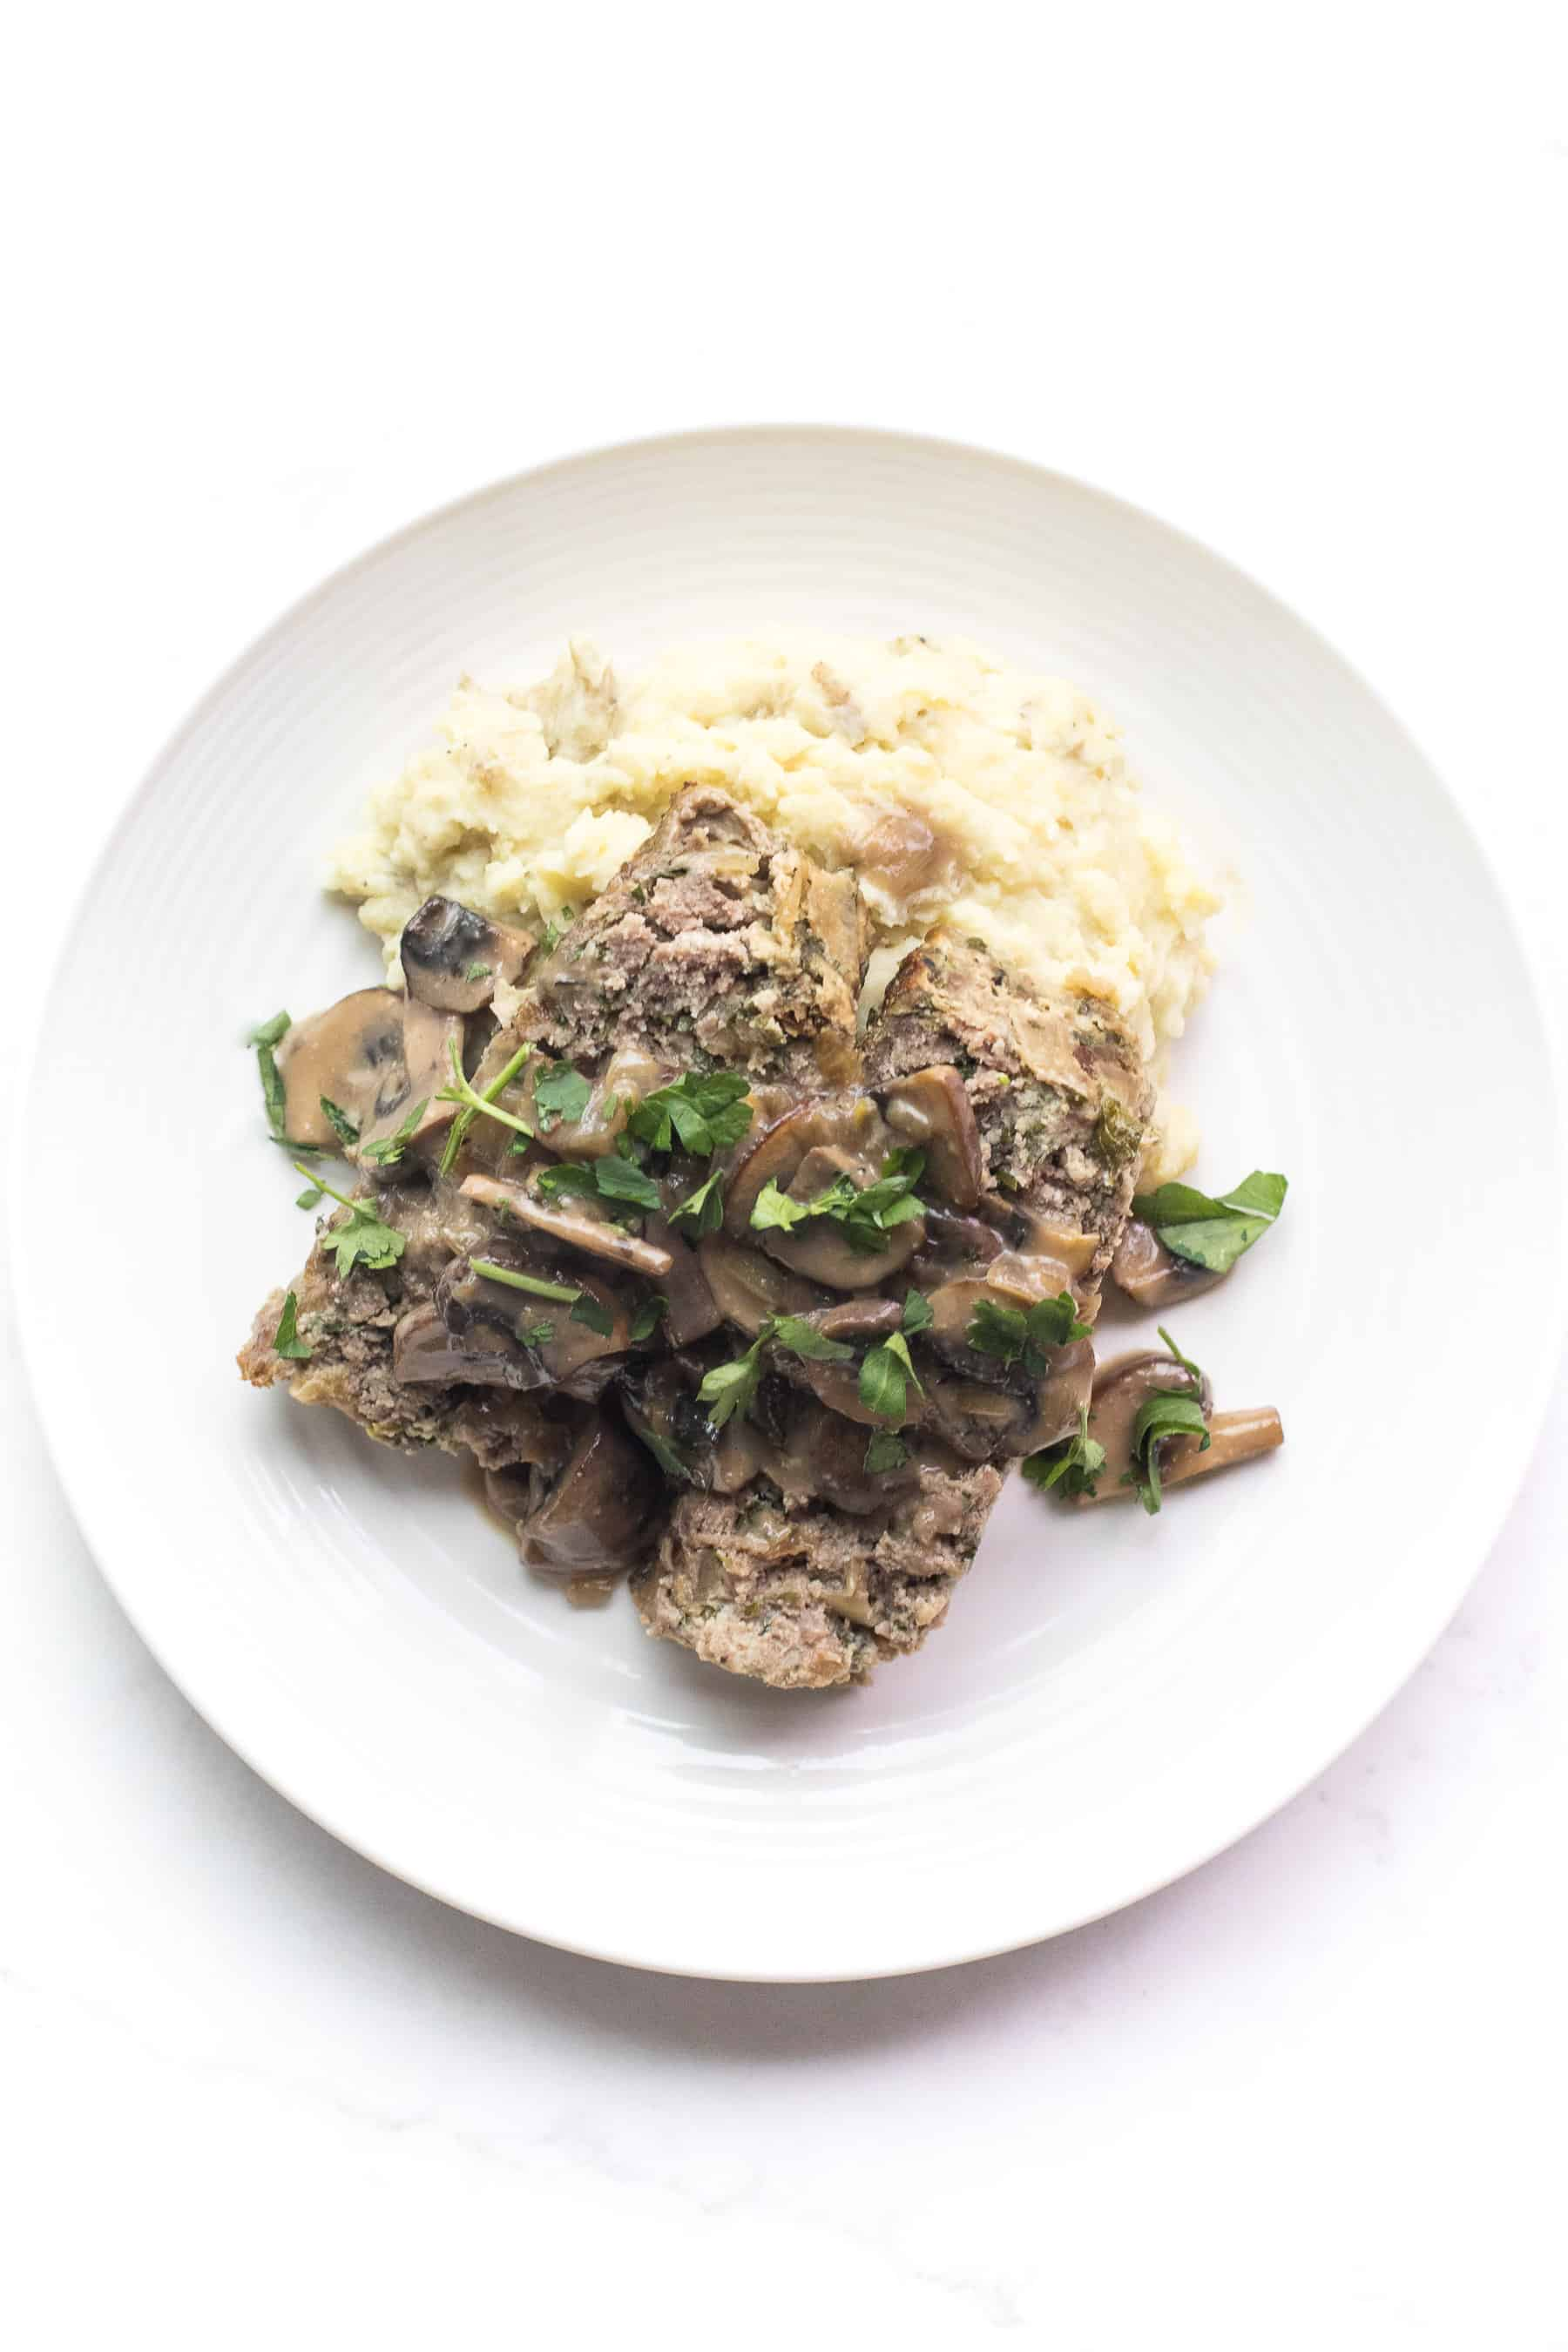 white plate with meatloaf and mushroom gravy over mashed potatoes